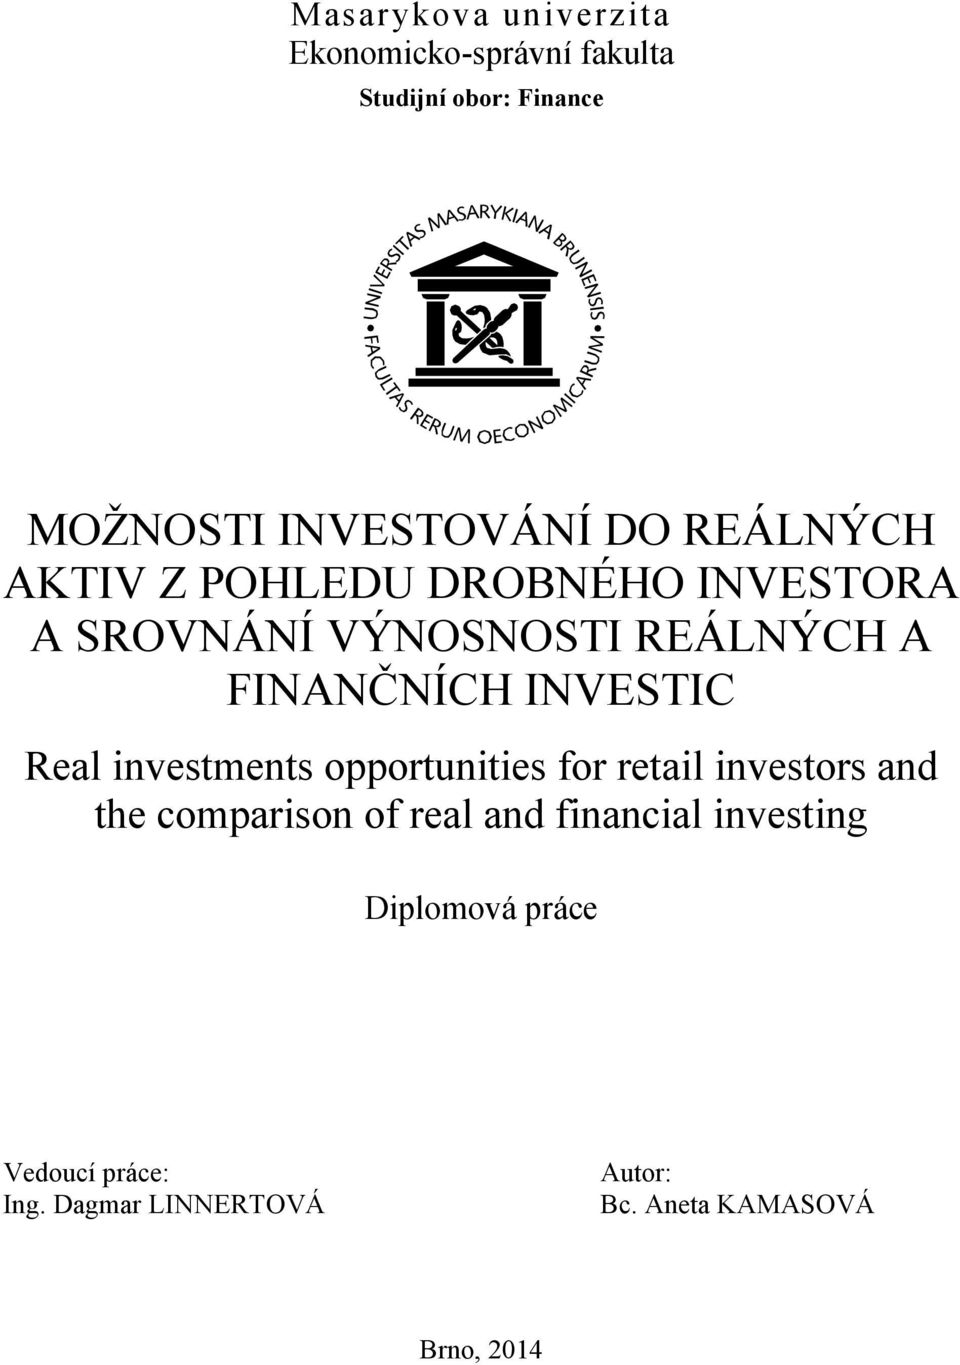 Real investments opportunities for retail investors and the comparison of real and financial